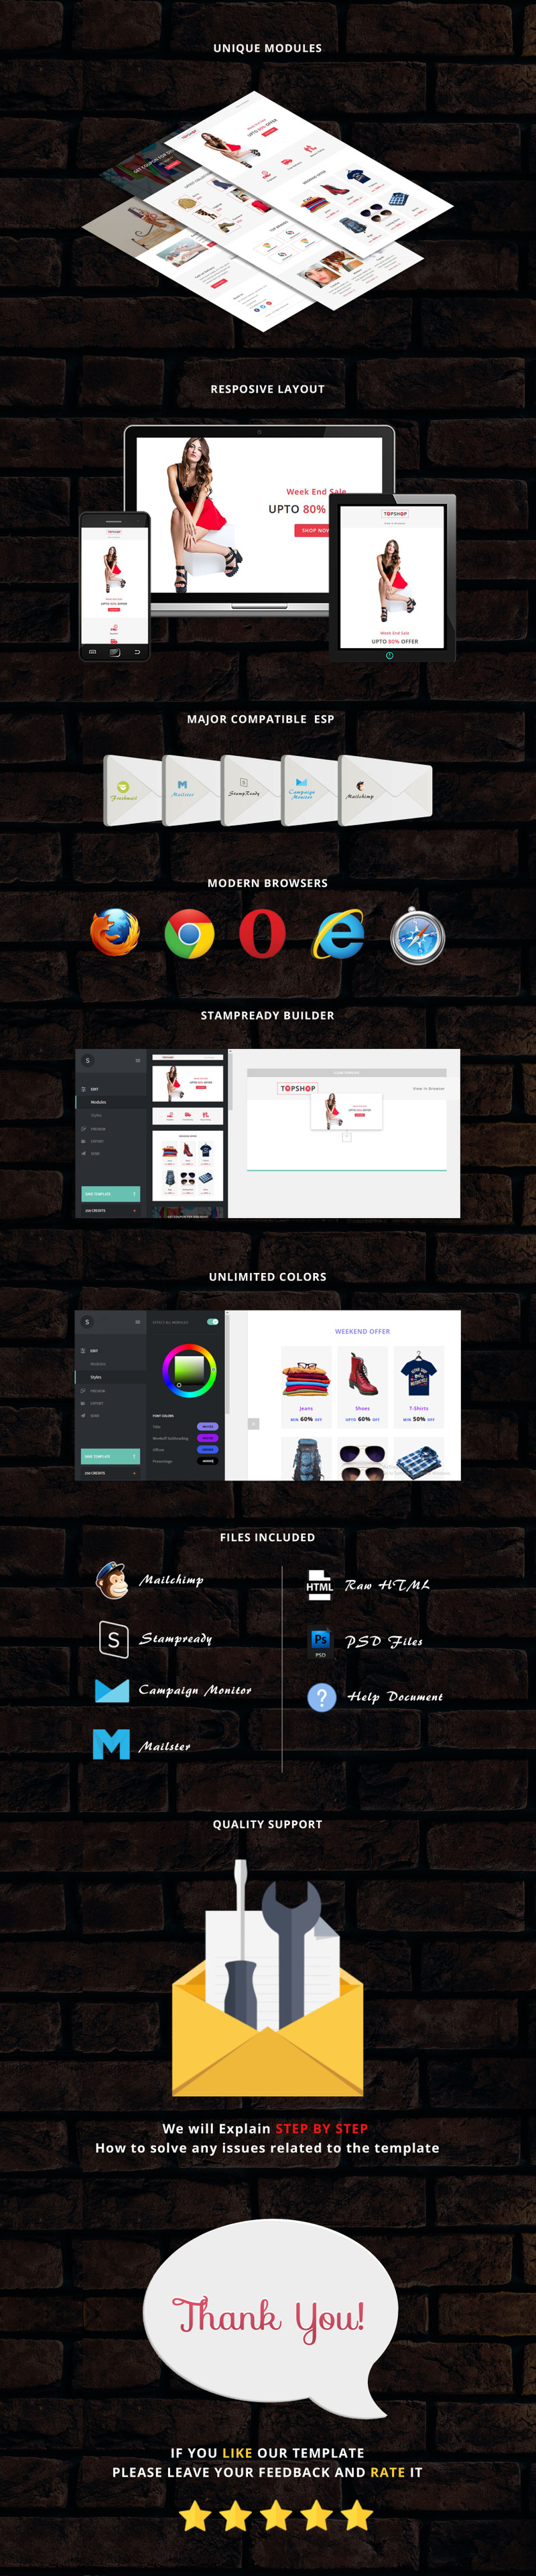 TopShop - Responsive Email Newsletter Template - Features Image 1